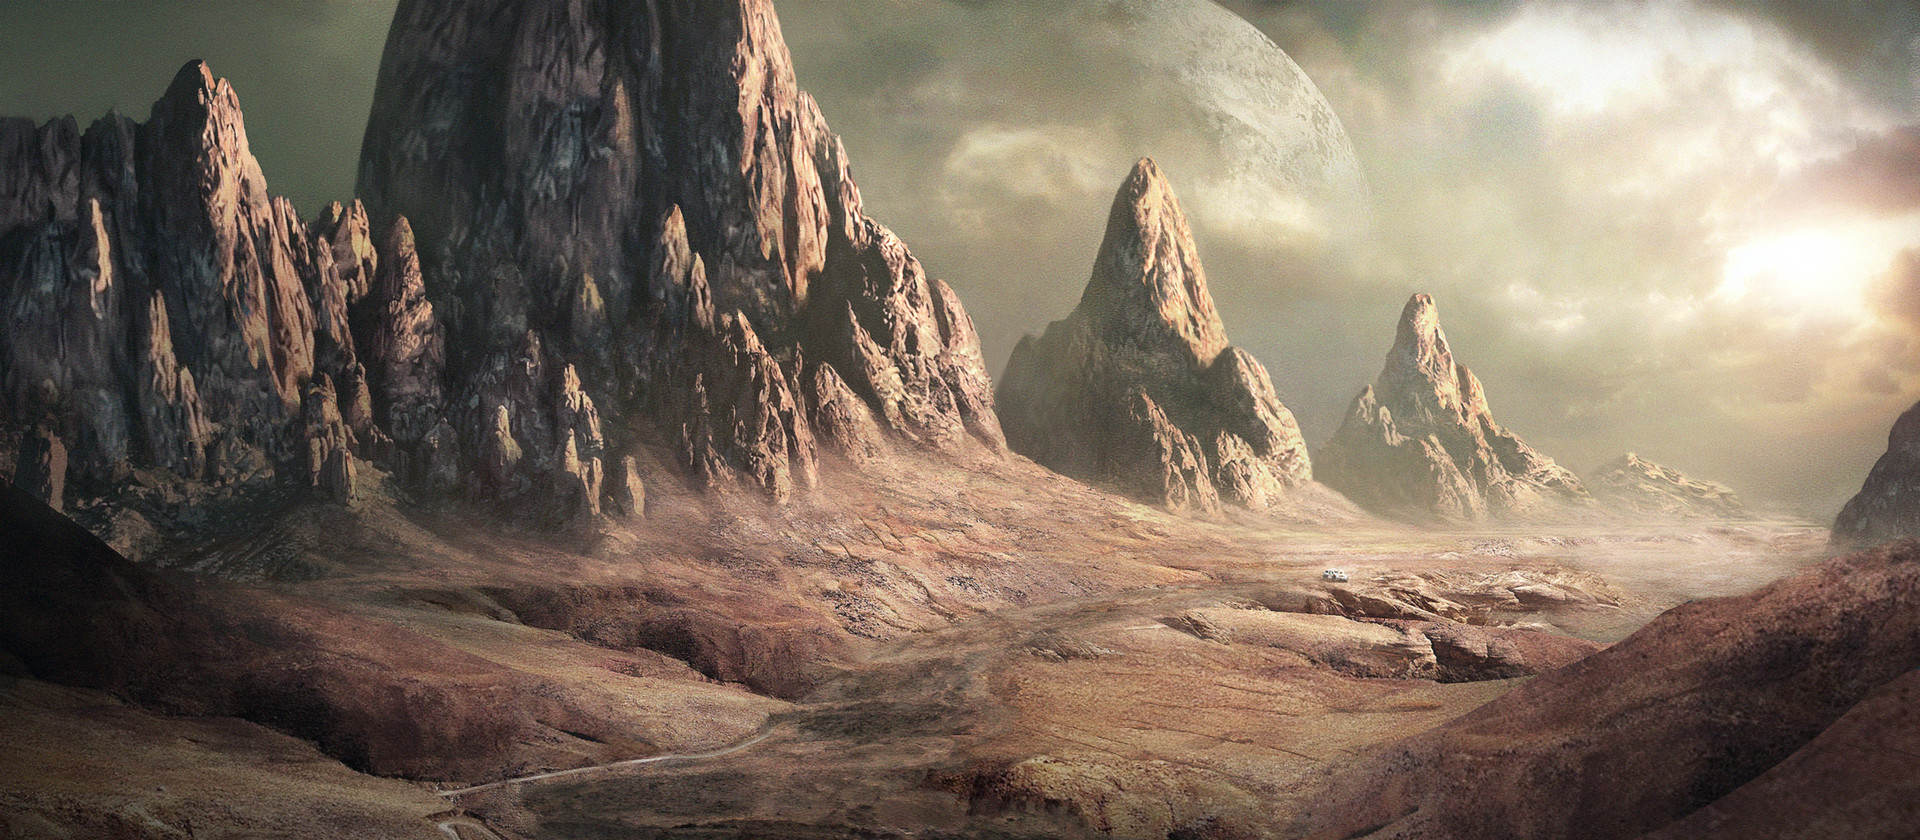 alien landscapes paintings - HD 1920×840